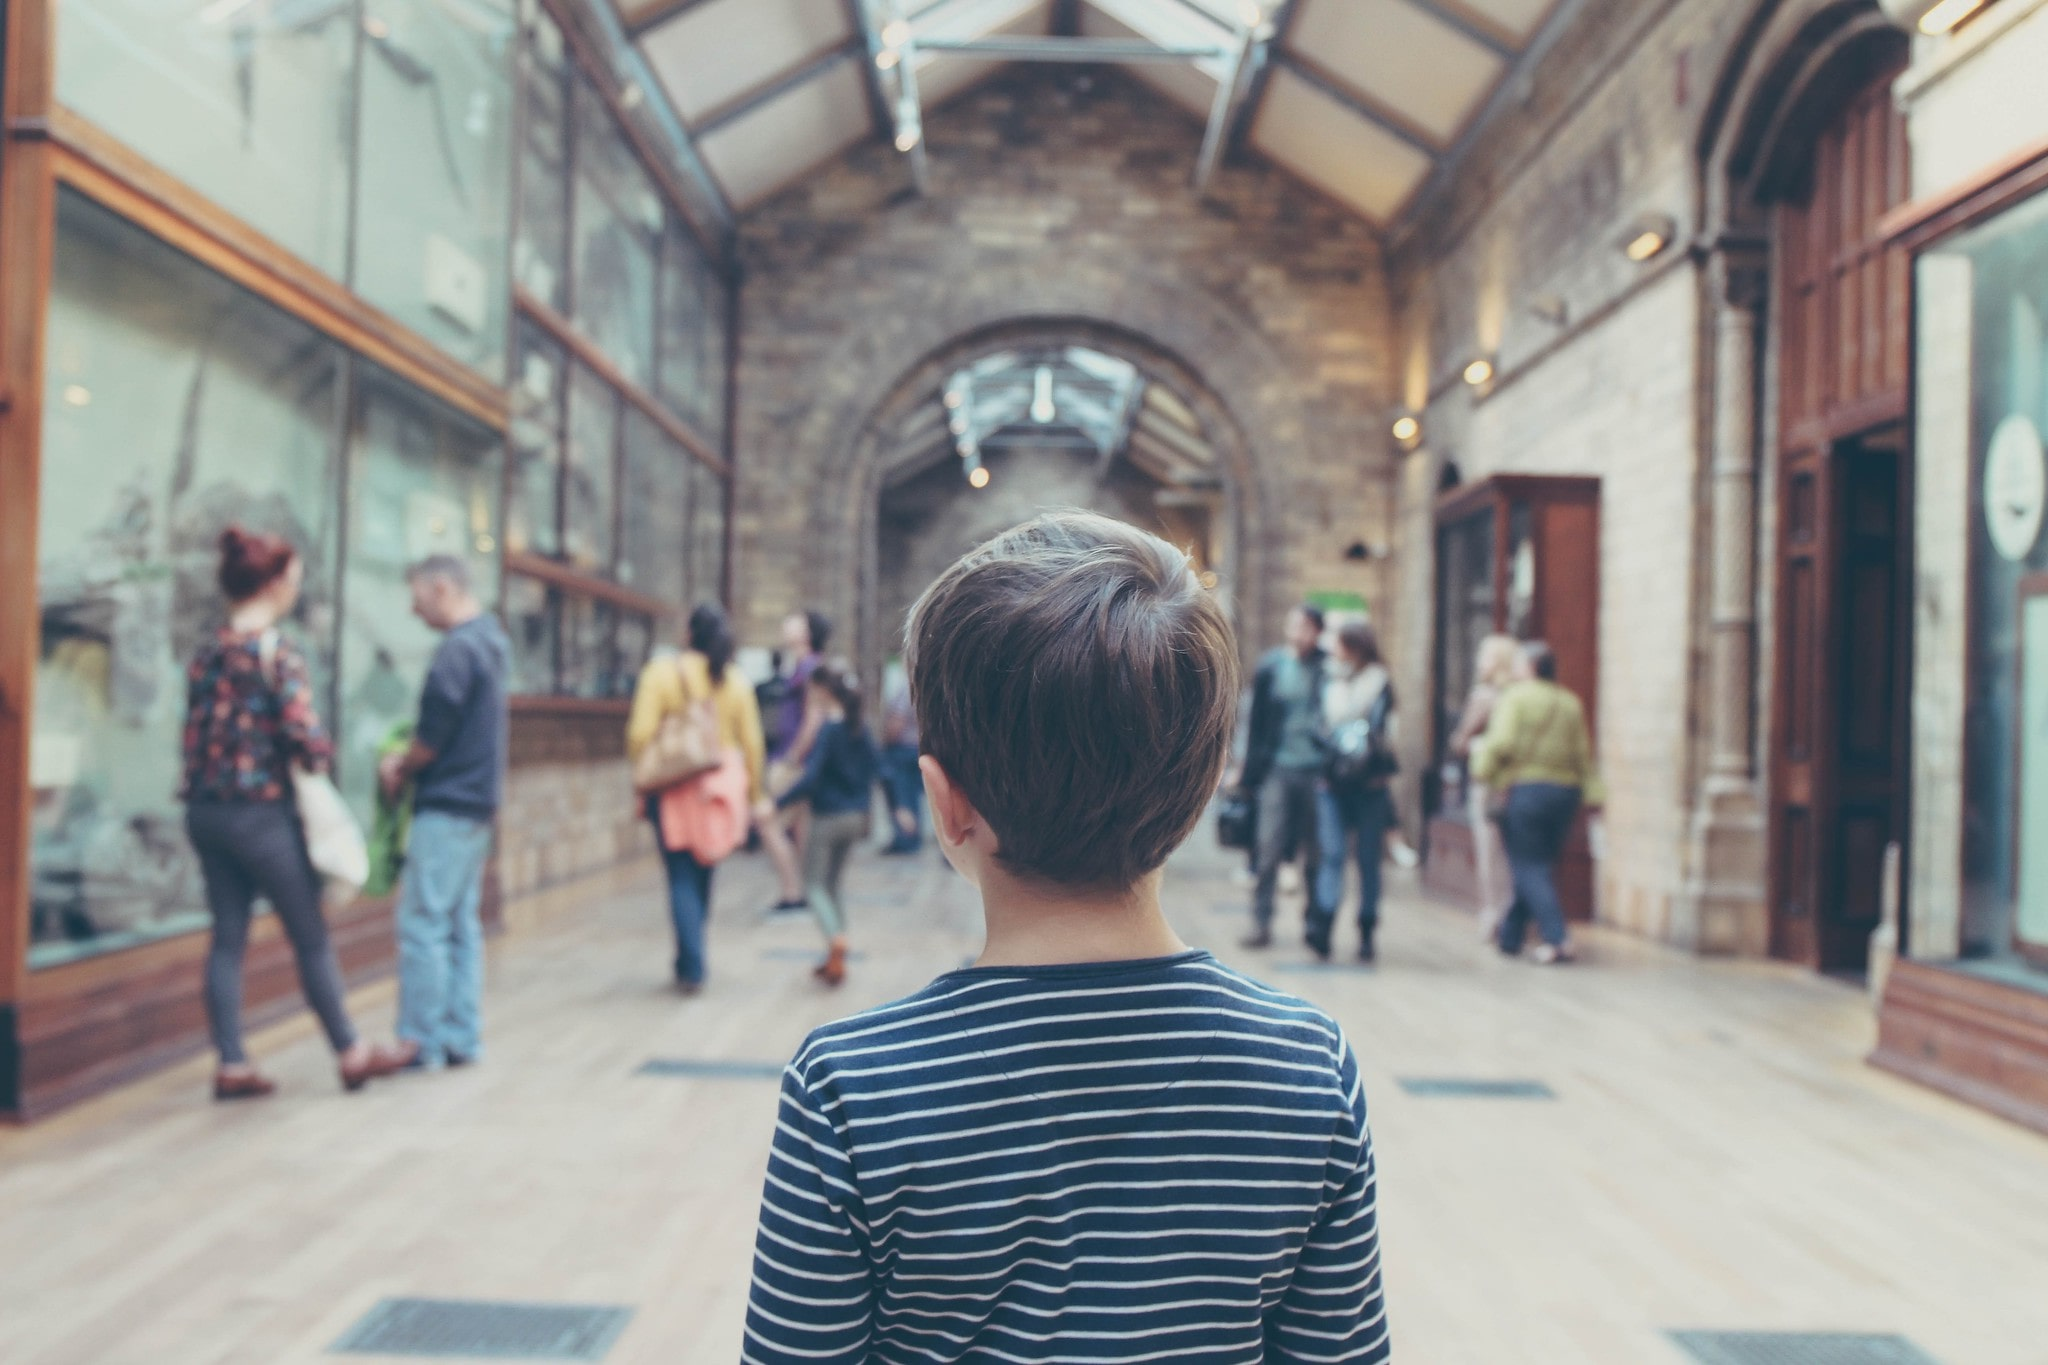 young boy stood in a museum